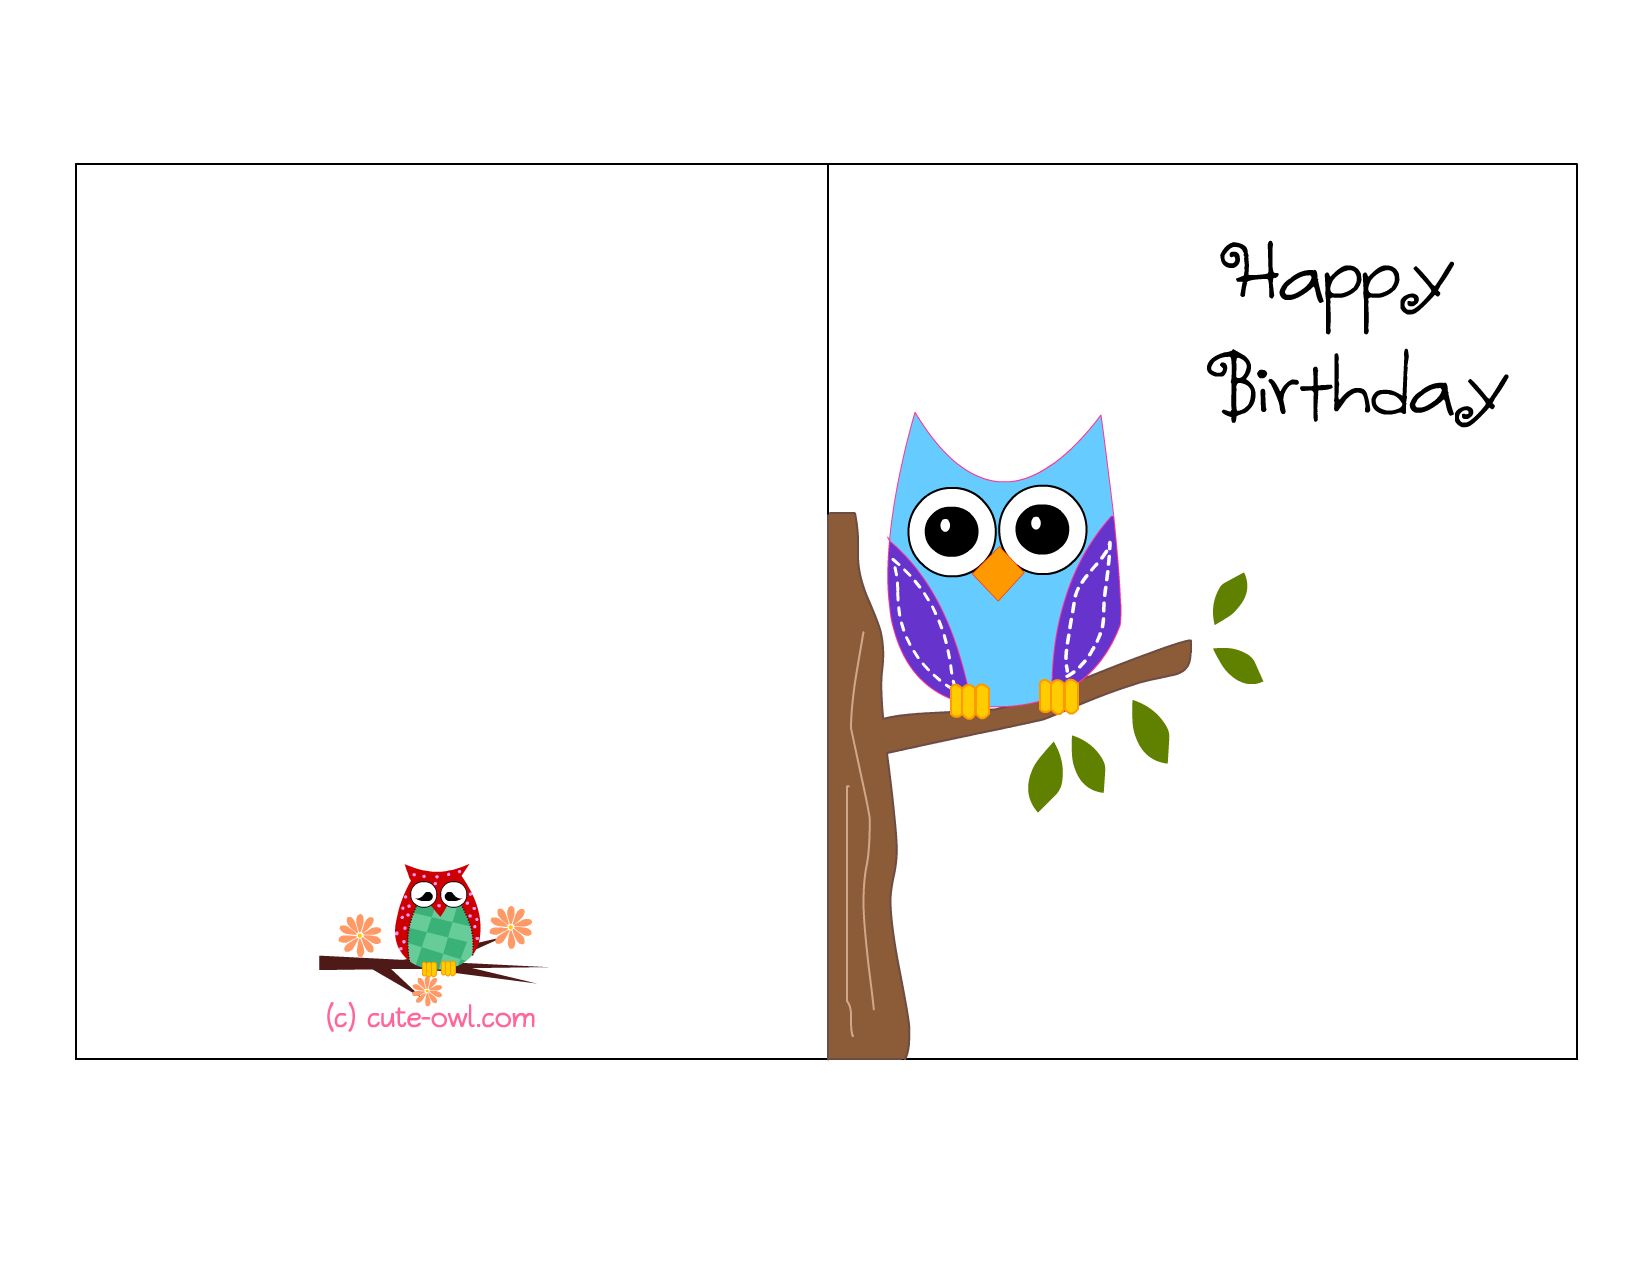 birthday card printables Incep.imagine ex.co